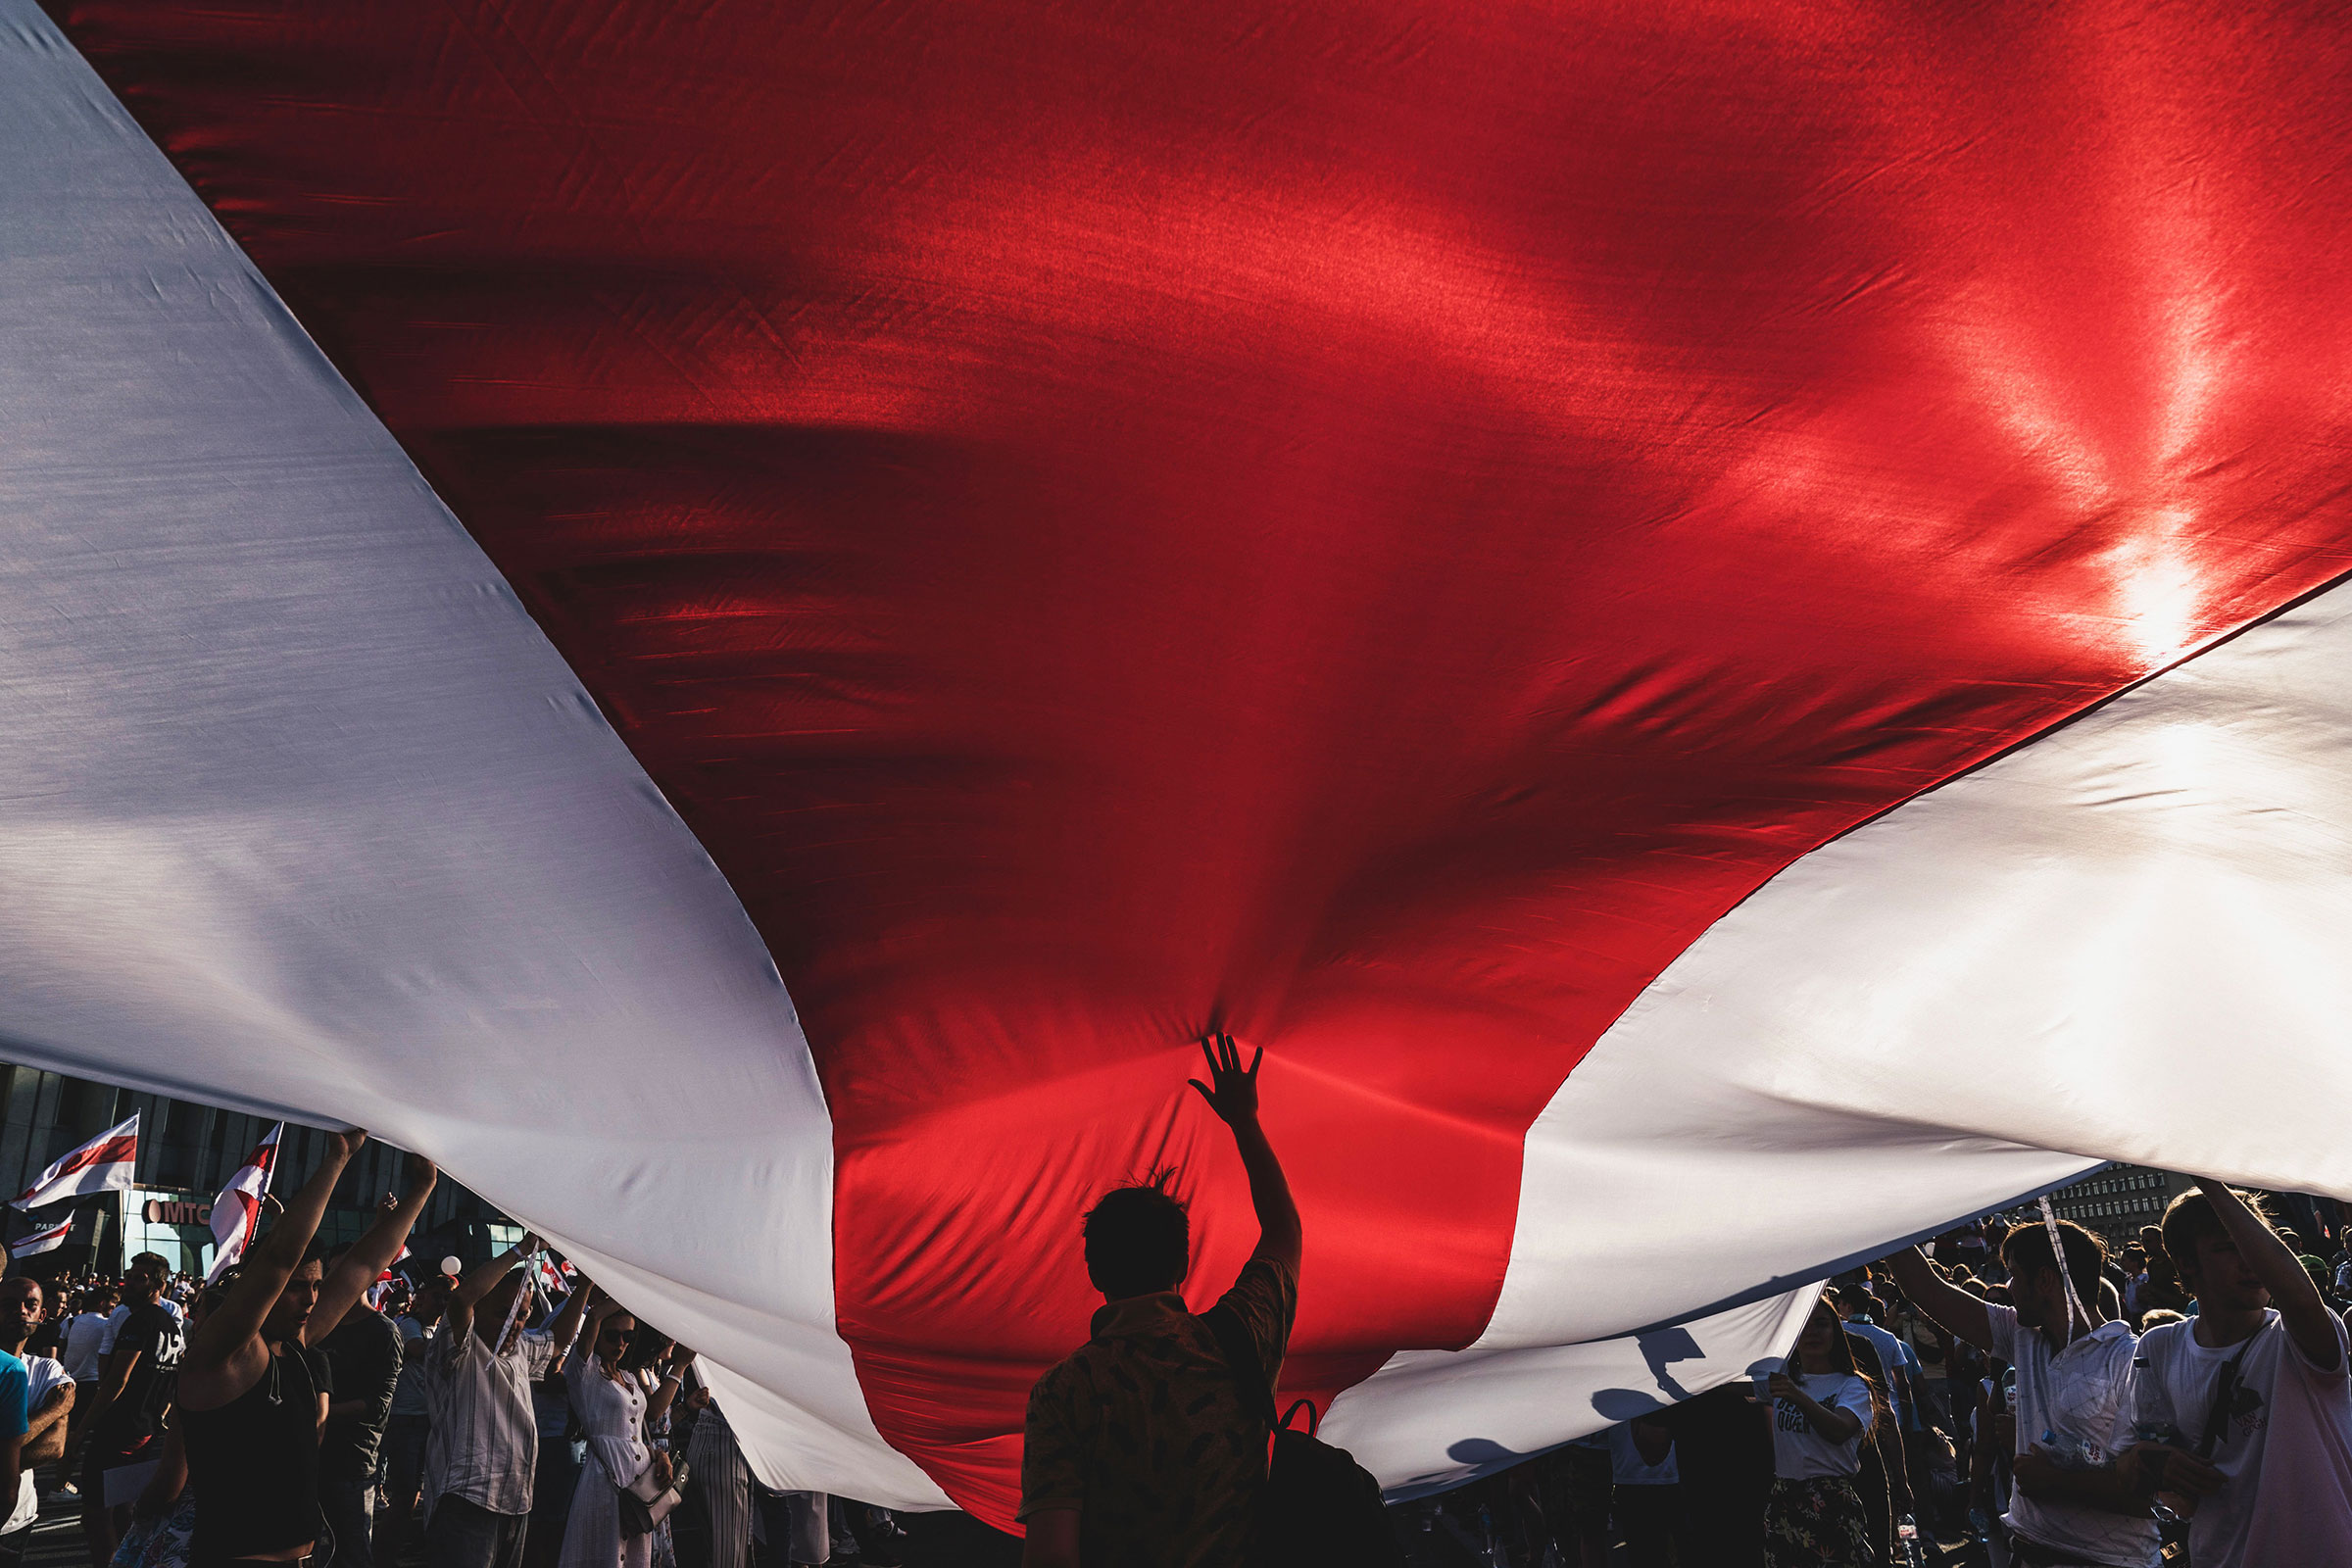 Protesters unfurl a banner in the colors of the former Belarus national flag as they call for the resignation of President Alexander Lukashenko in Minsk, Belarus, on Aug. 16, 2020.